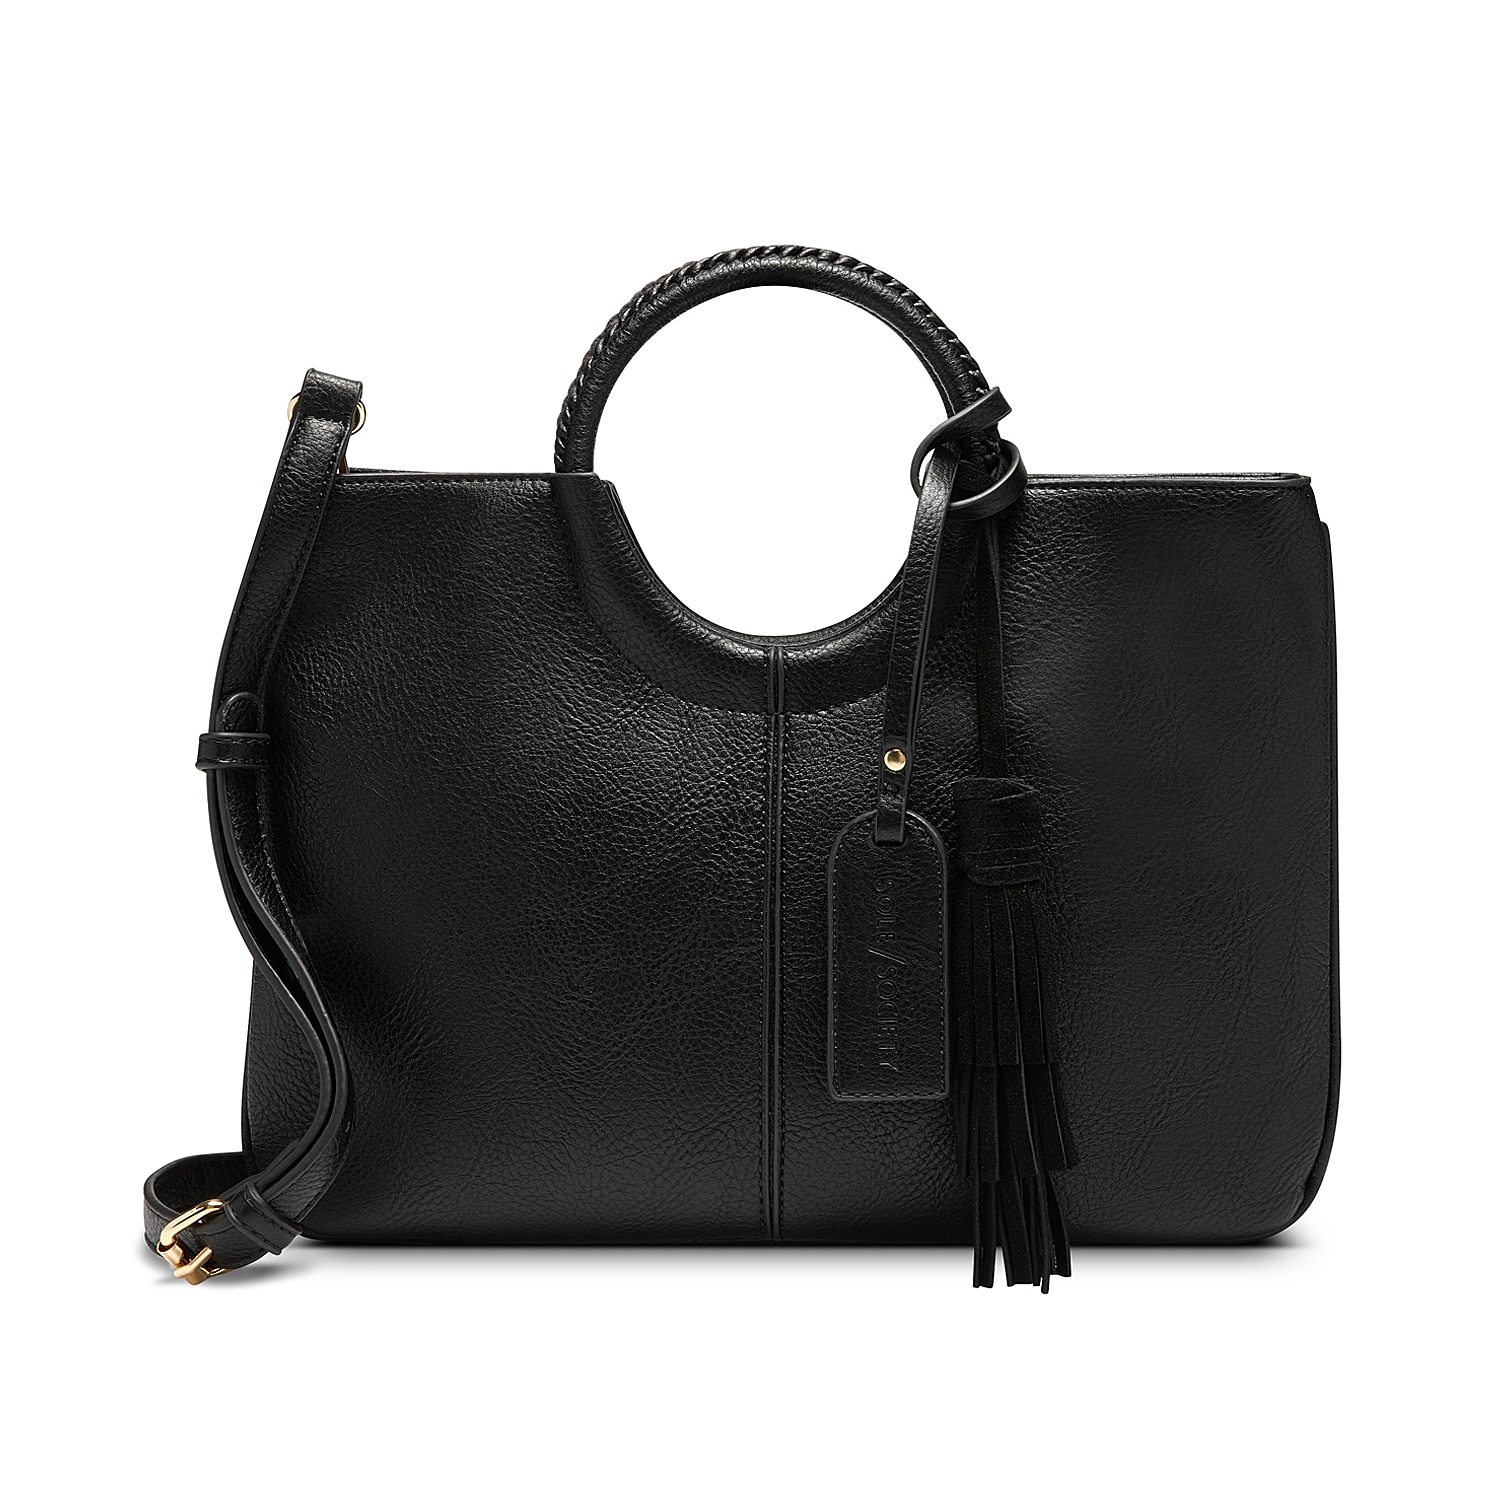 The Day satchel from Sole Society flaunts modern sophistication with its ring-shaped handles and structured design. This handbag features a removable shoulder strap for added versatility.